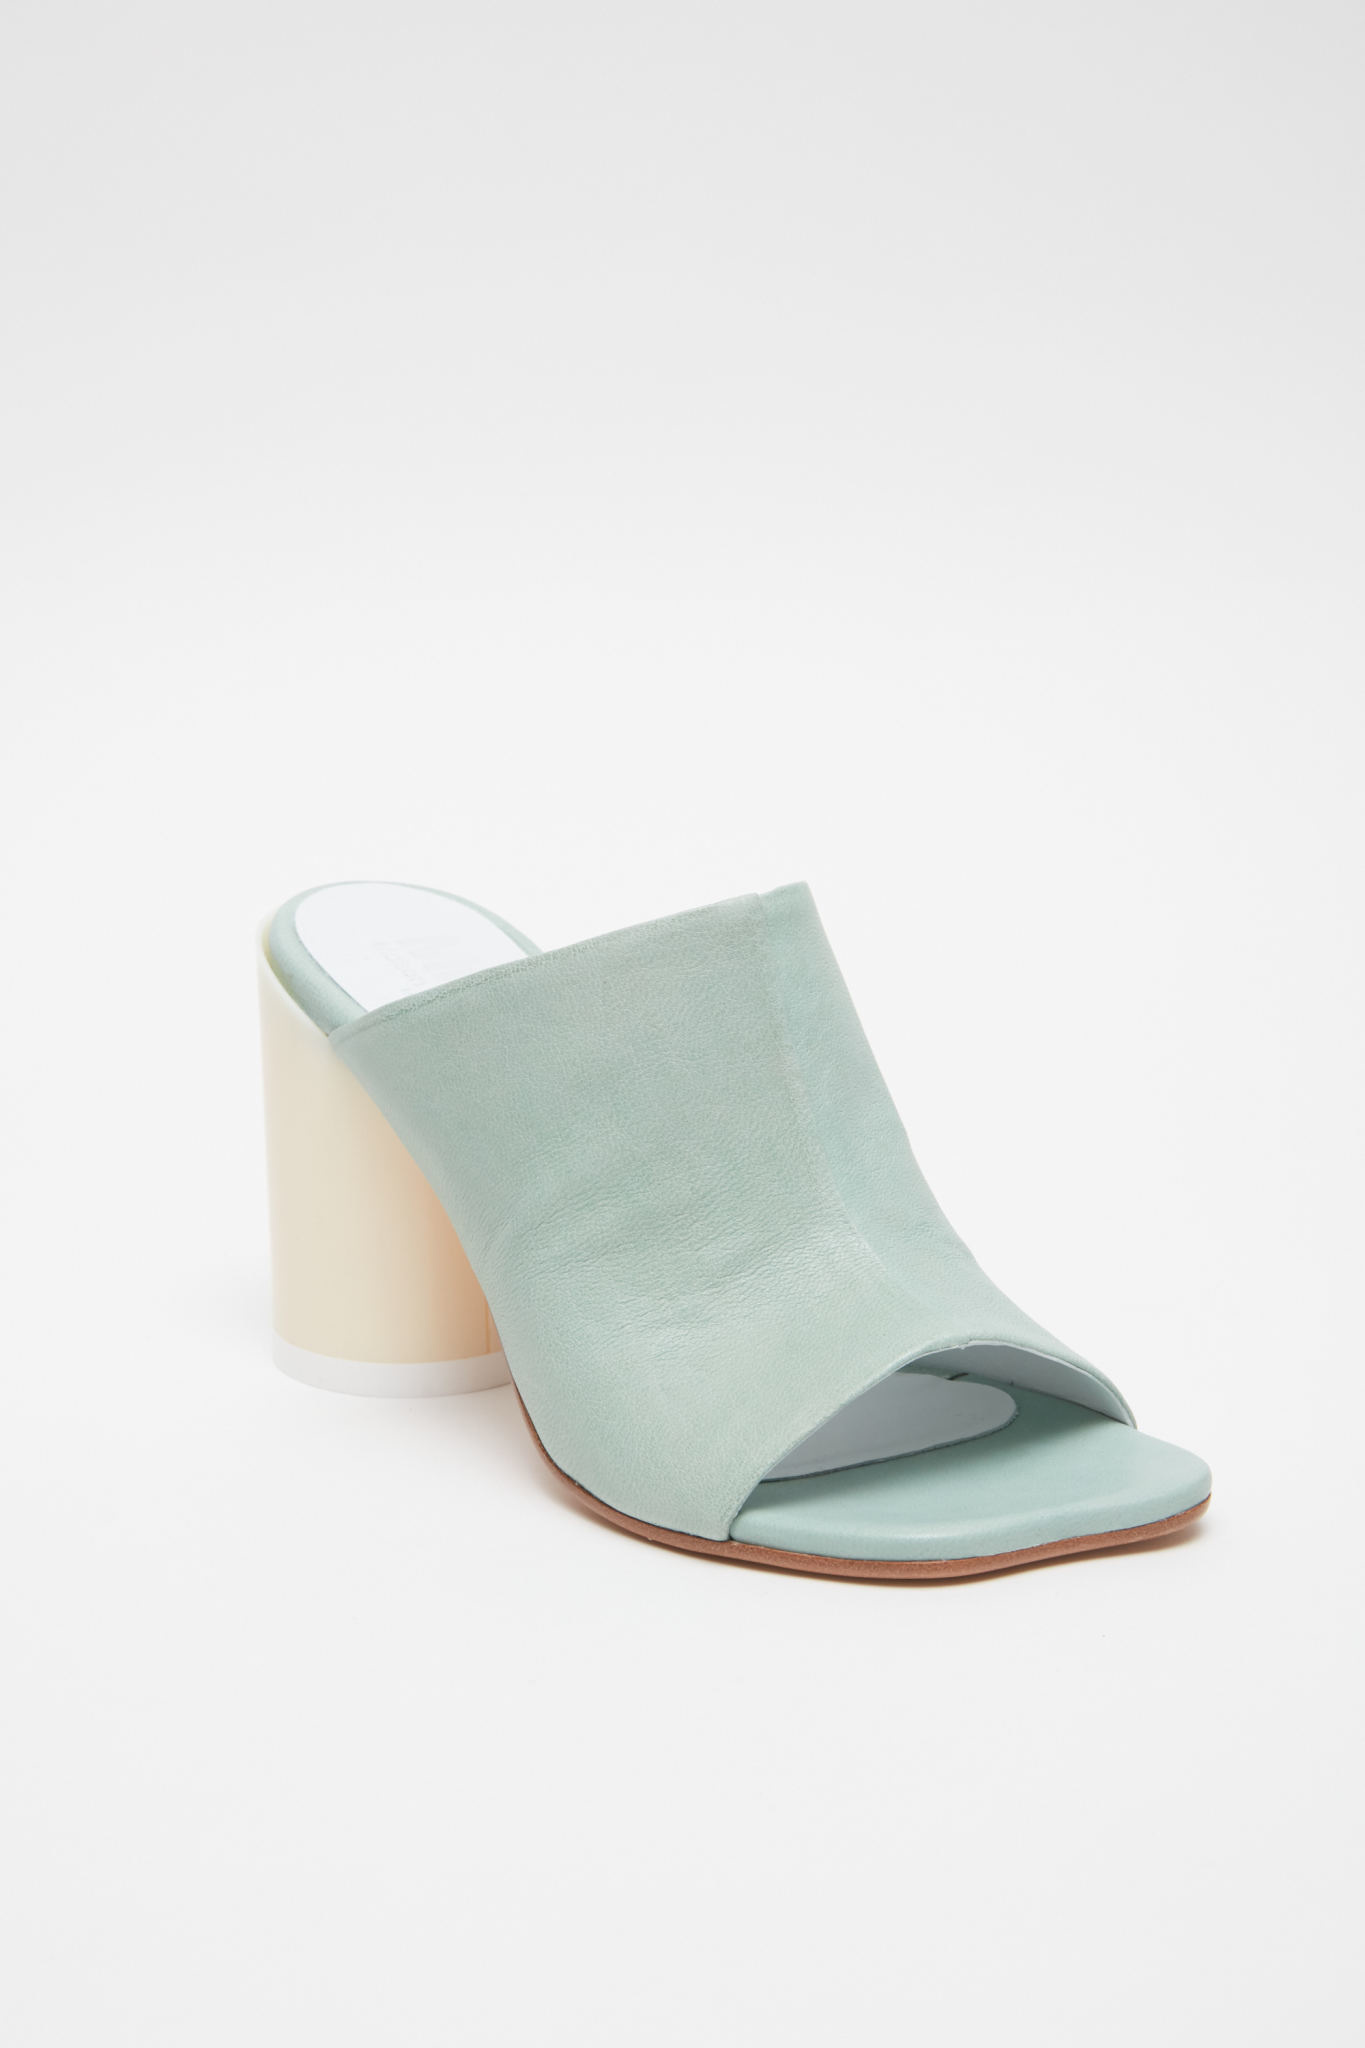 MM6 MAISON MARGIELA Anatomic Mules in Green and Bone